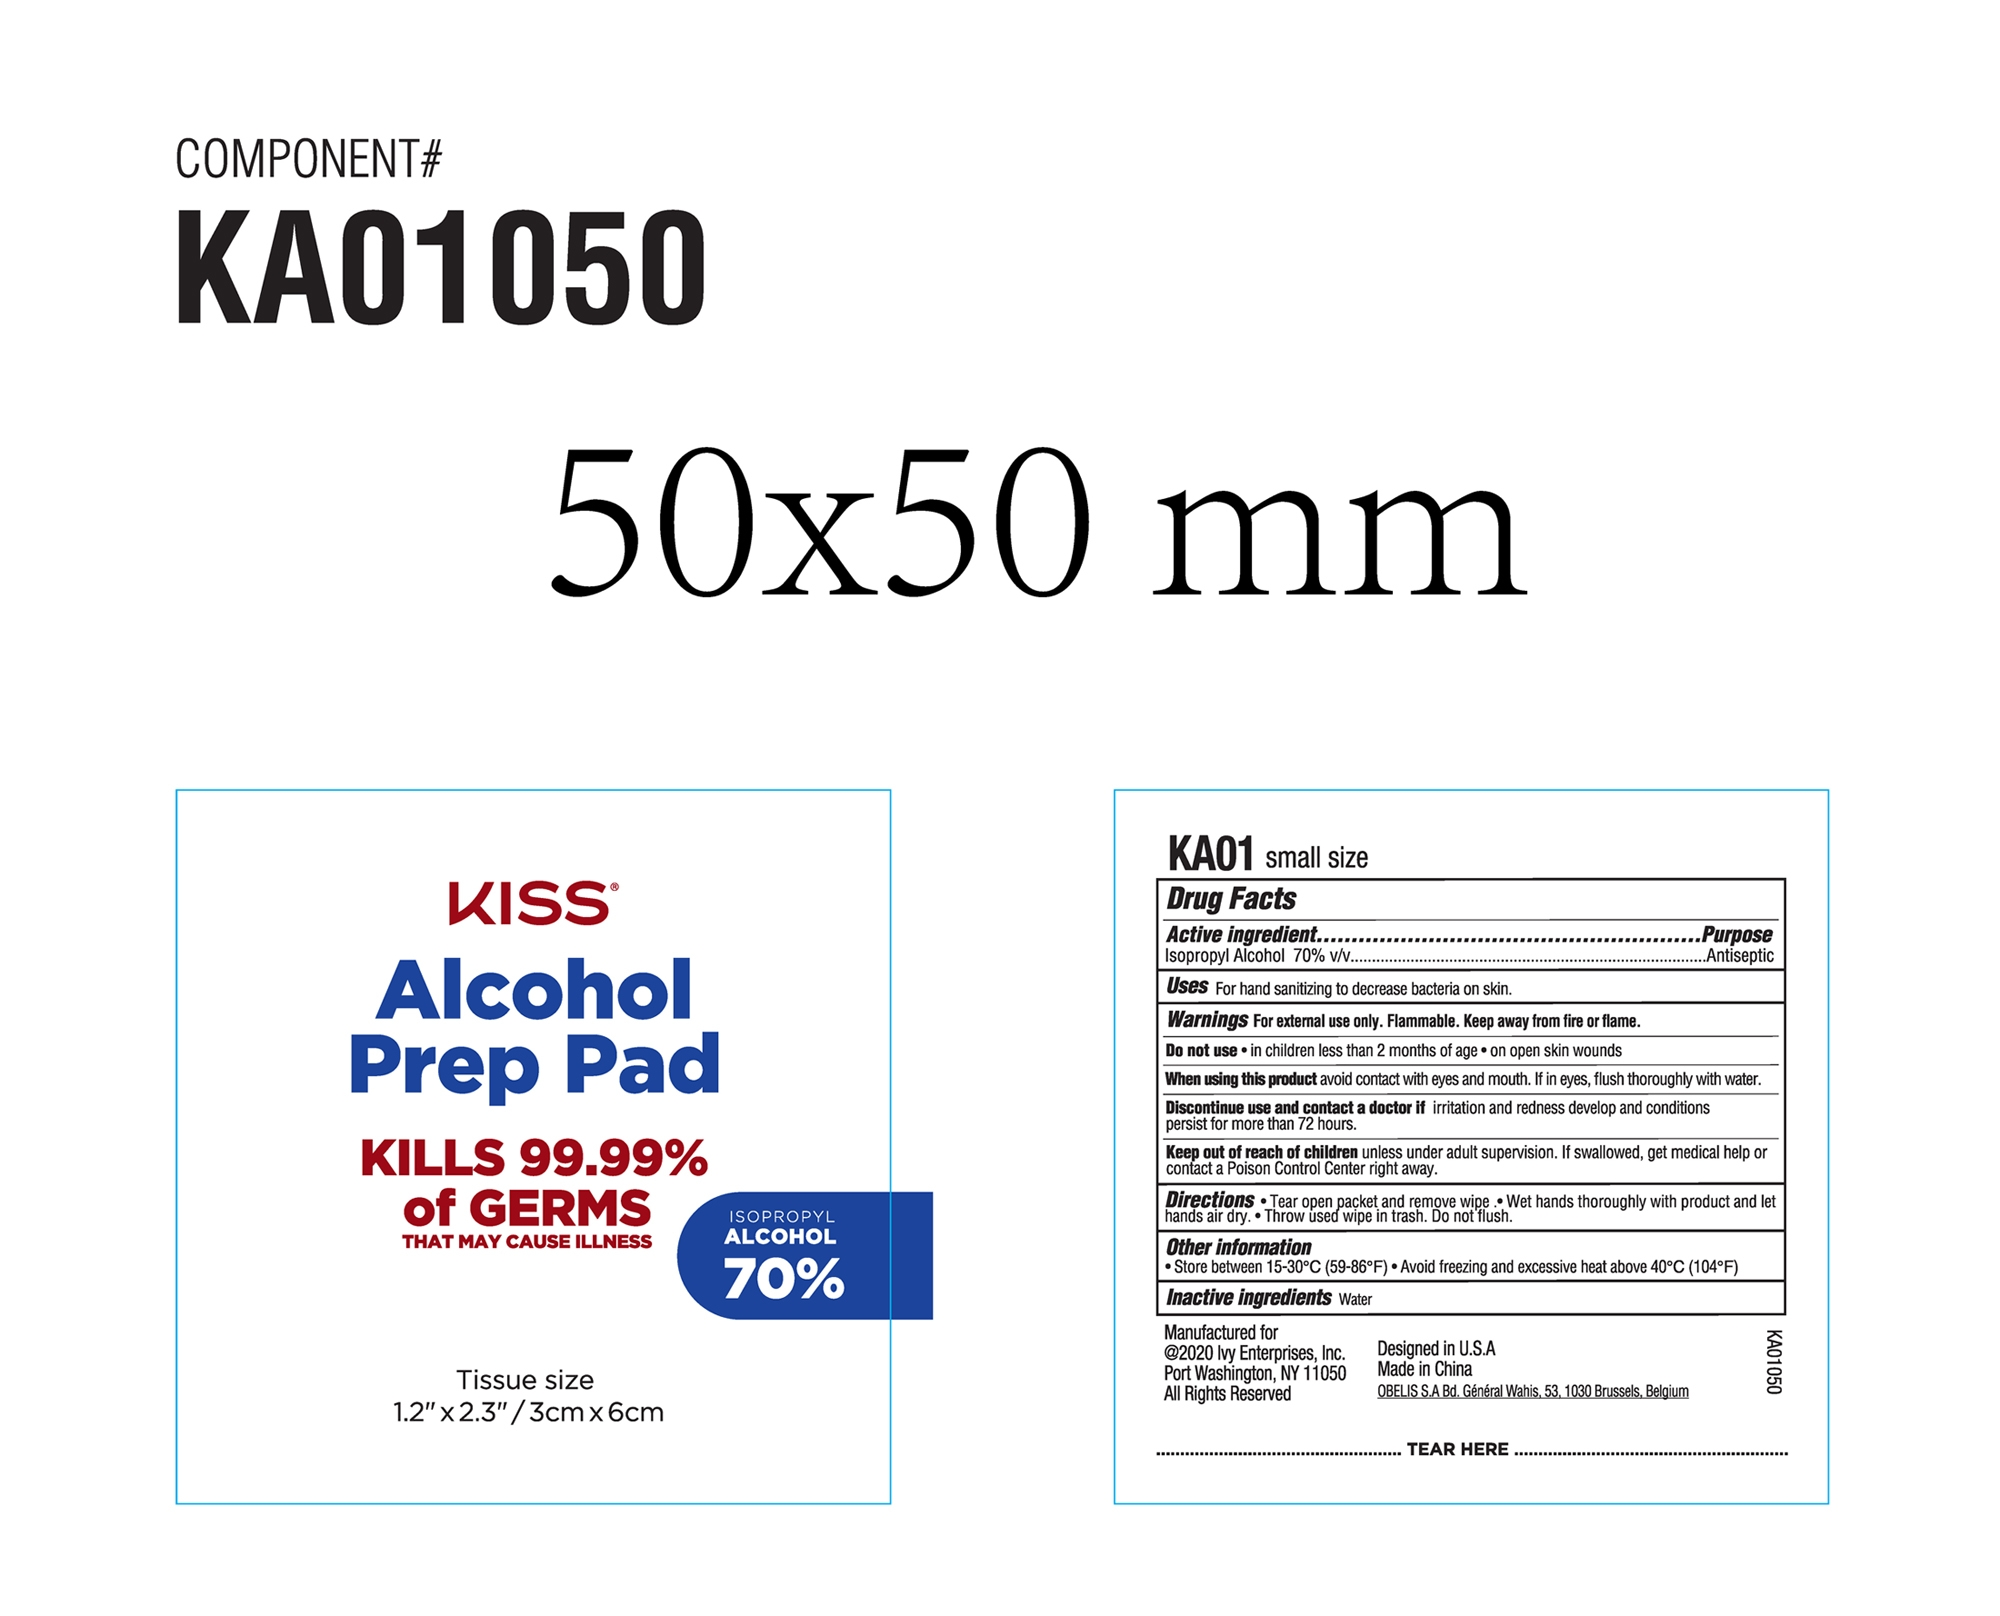 Kiss Alcohol Prep Pad KA01